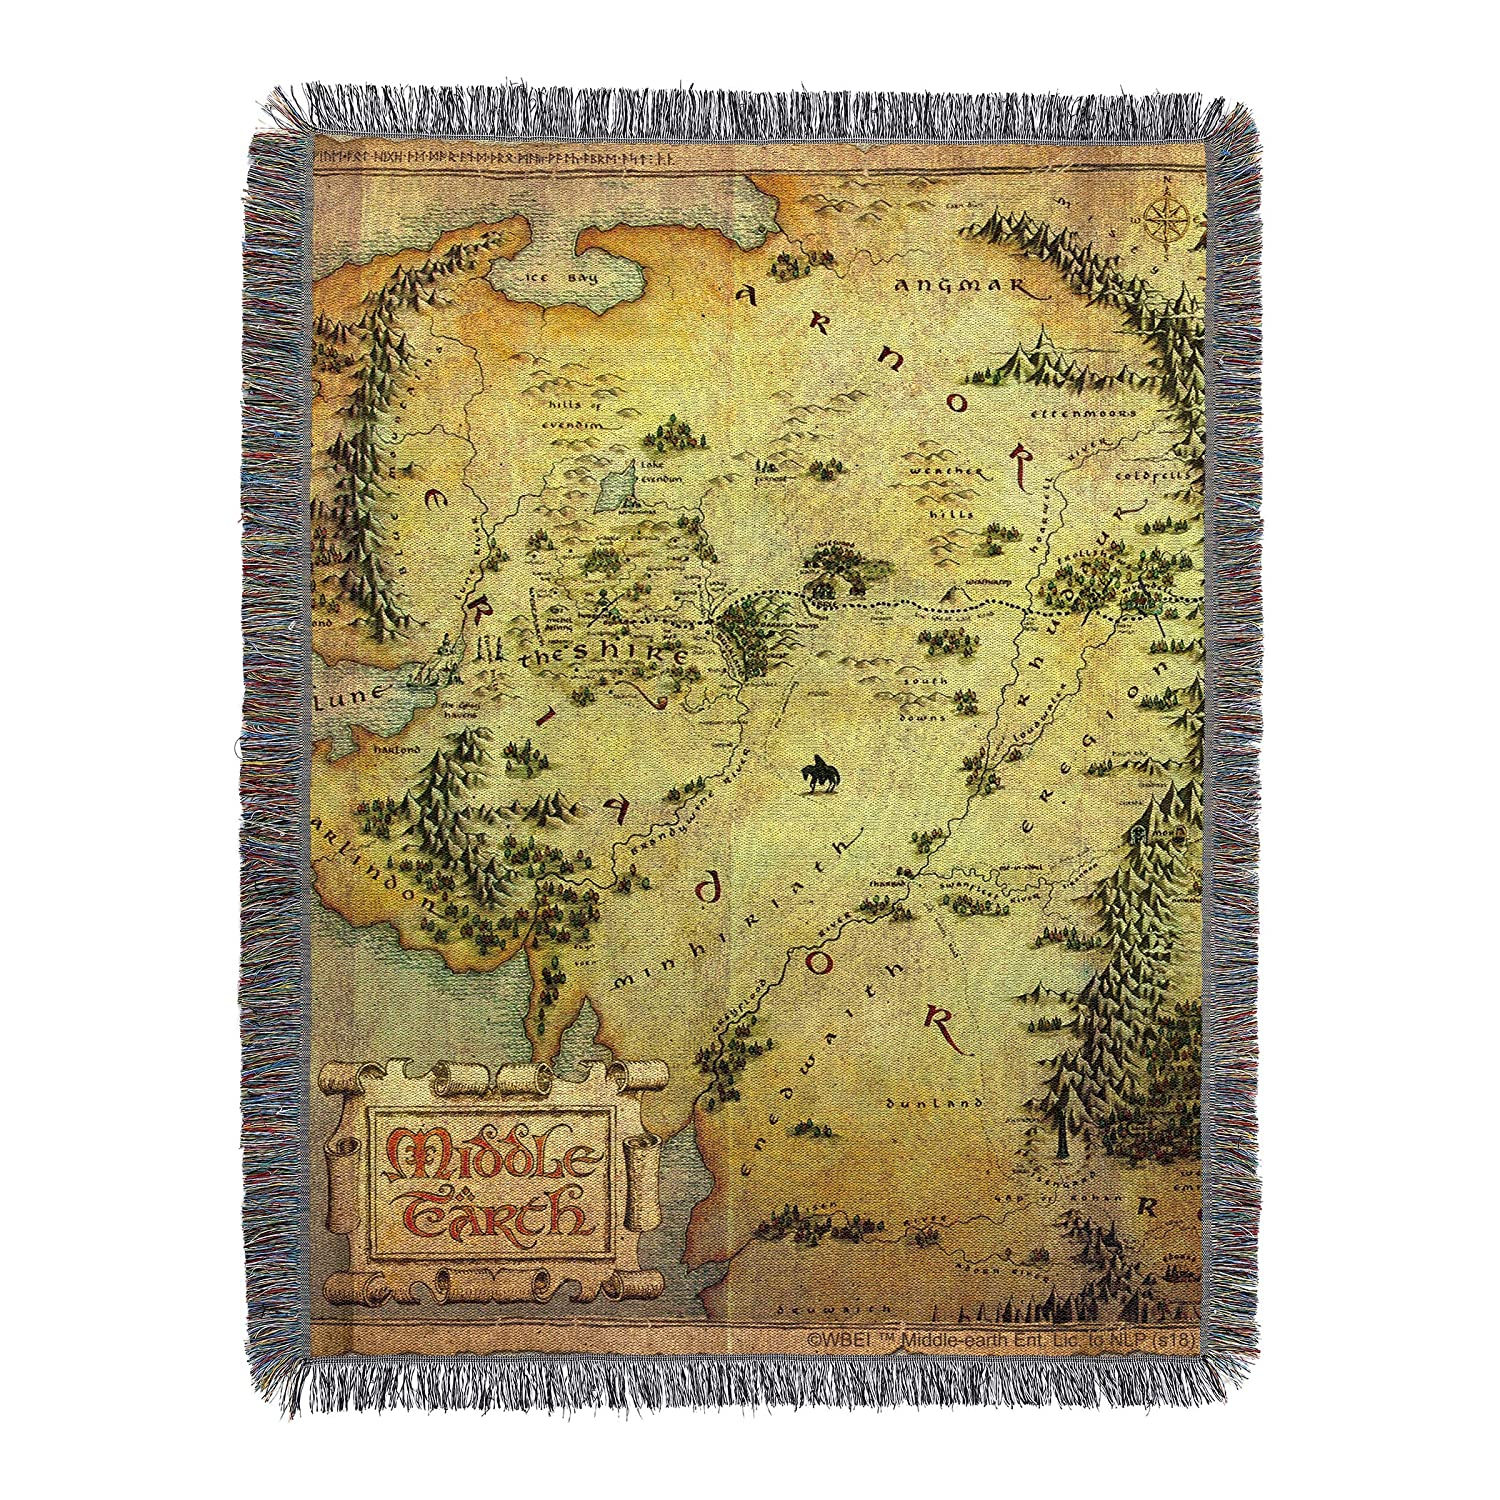 "Warner Brothers The Hobbit, Middle Earth Woven Tapestry Throw Blanket, 48"" x 60"", Multi Color"